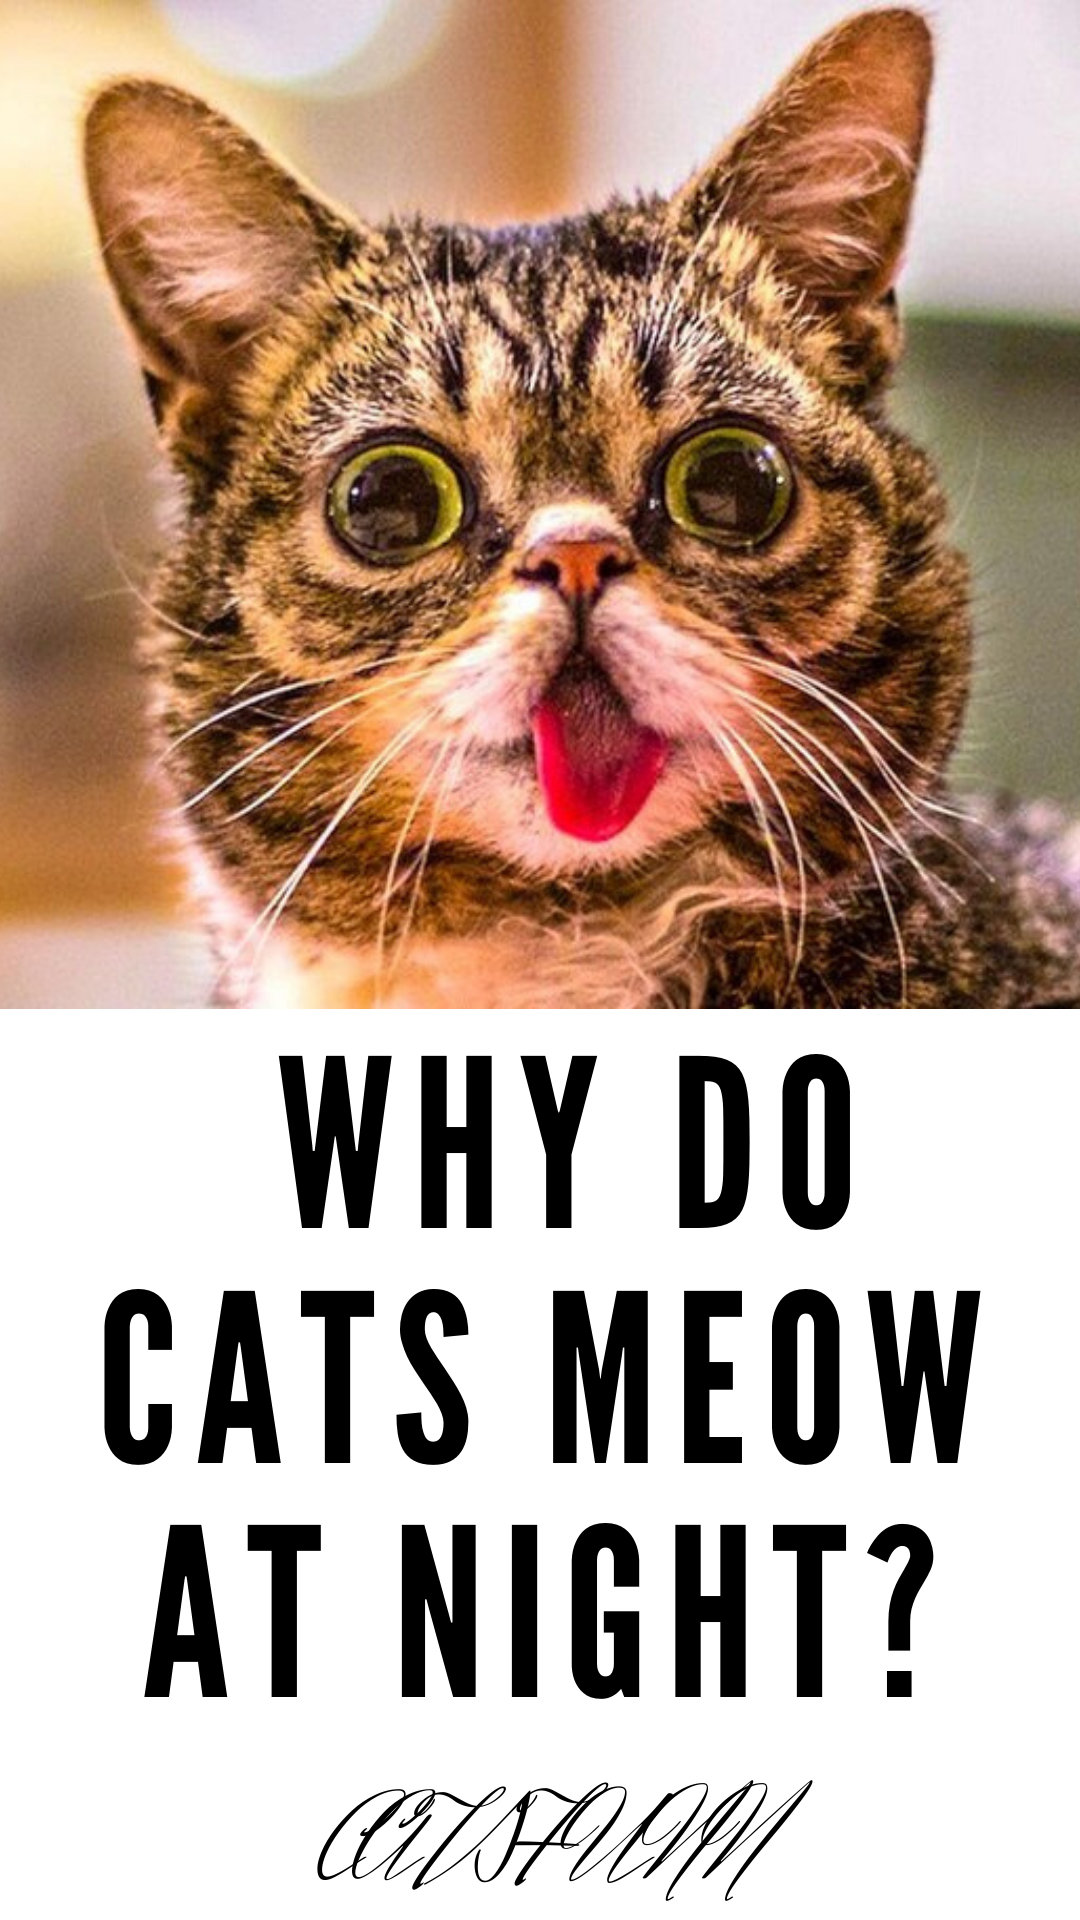 Why Do Cats Meow At Night In 2020 Cat Meowing At Night Cats Pretty Cats